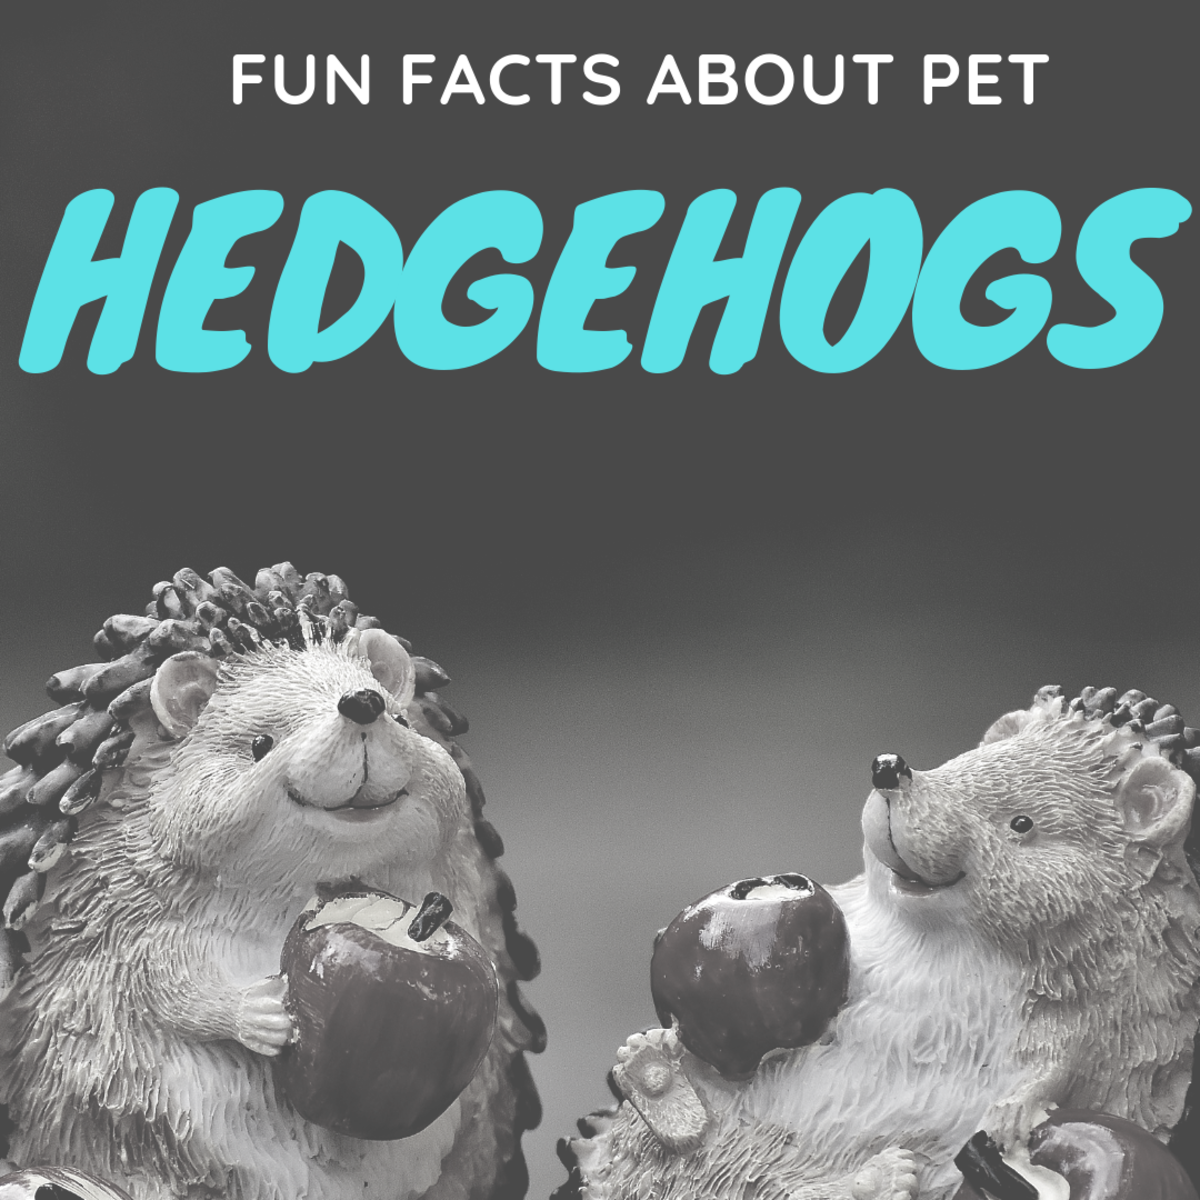 Fun Facts About Pet Hedgehogs